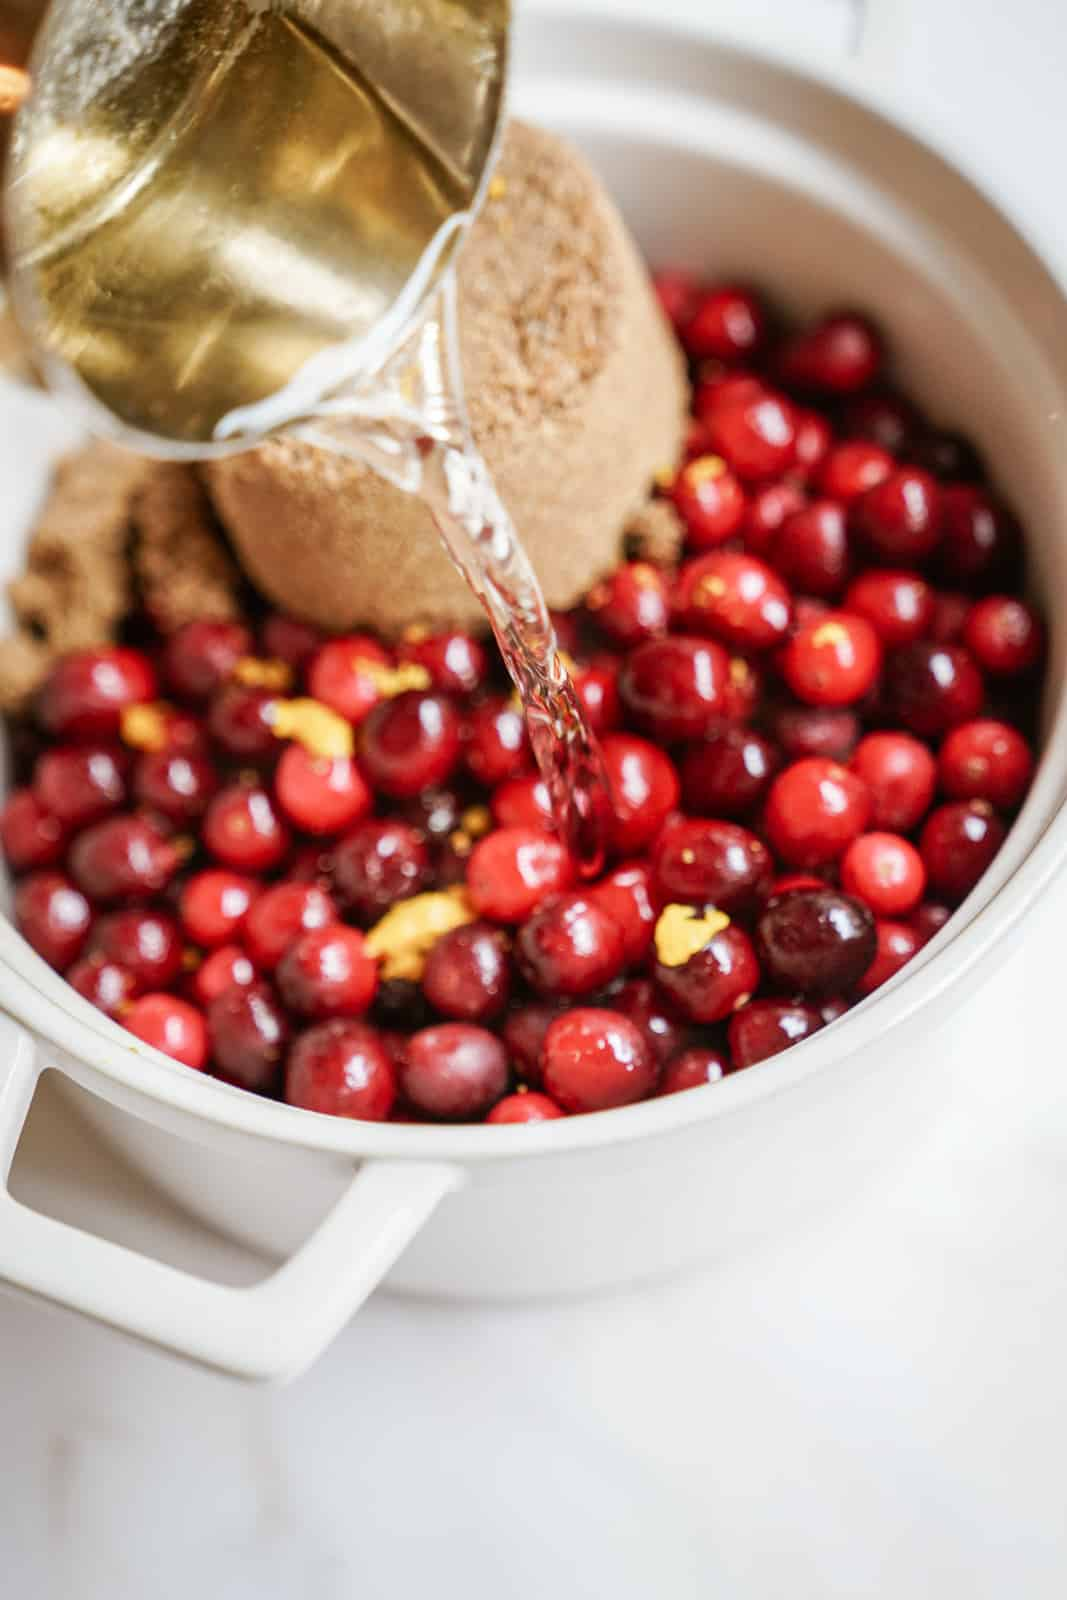 Water being added to fresh cranberries and sugar for vegan cranberry sauce